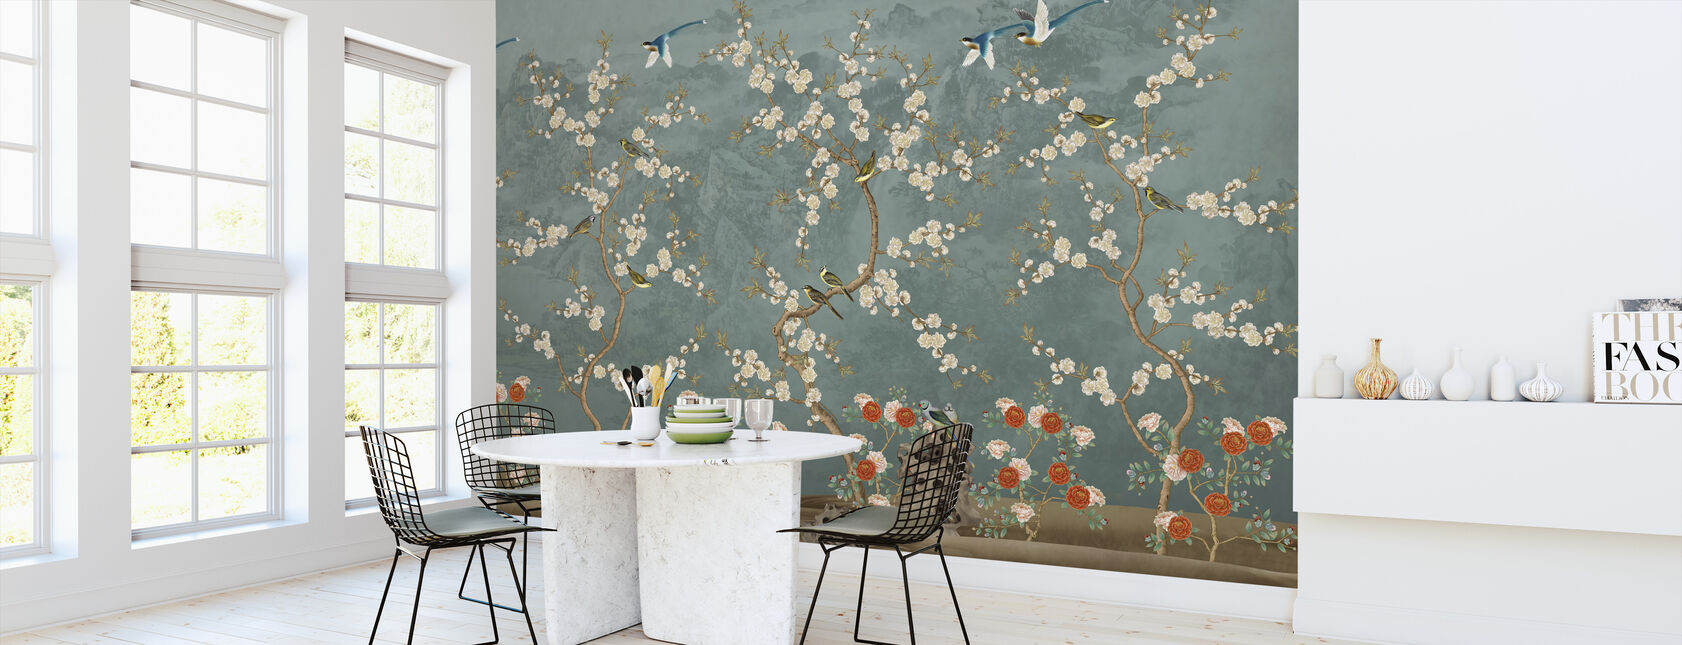 Chinoiserie Garden - Blue - Wallpaper - Kitchen